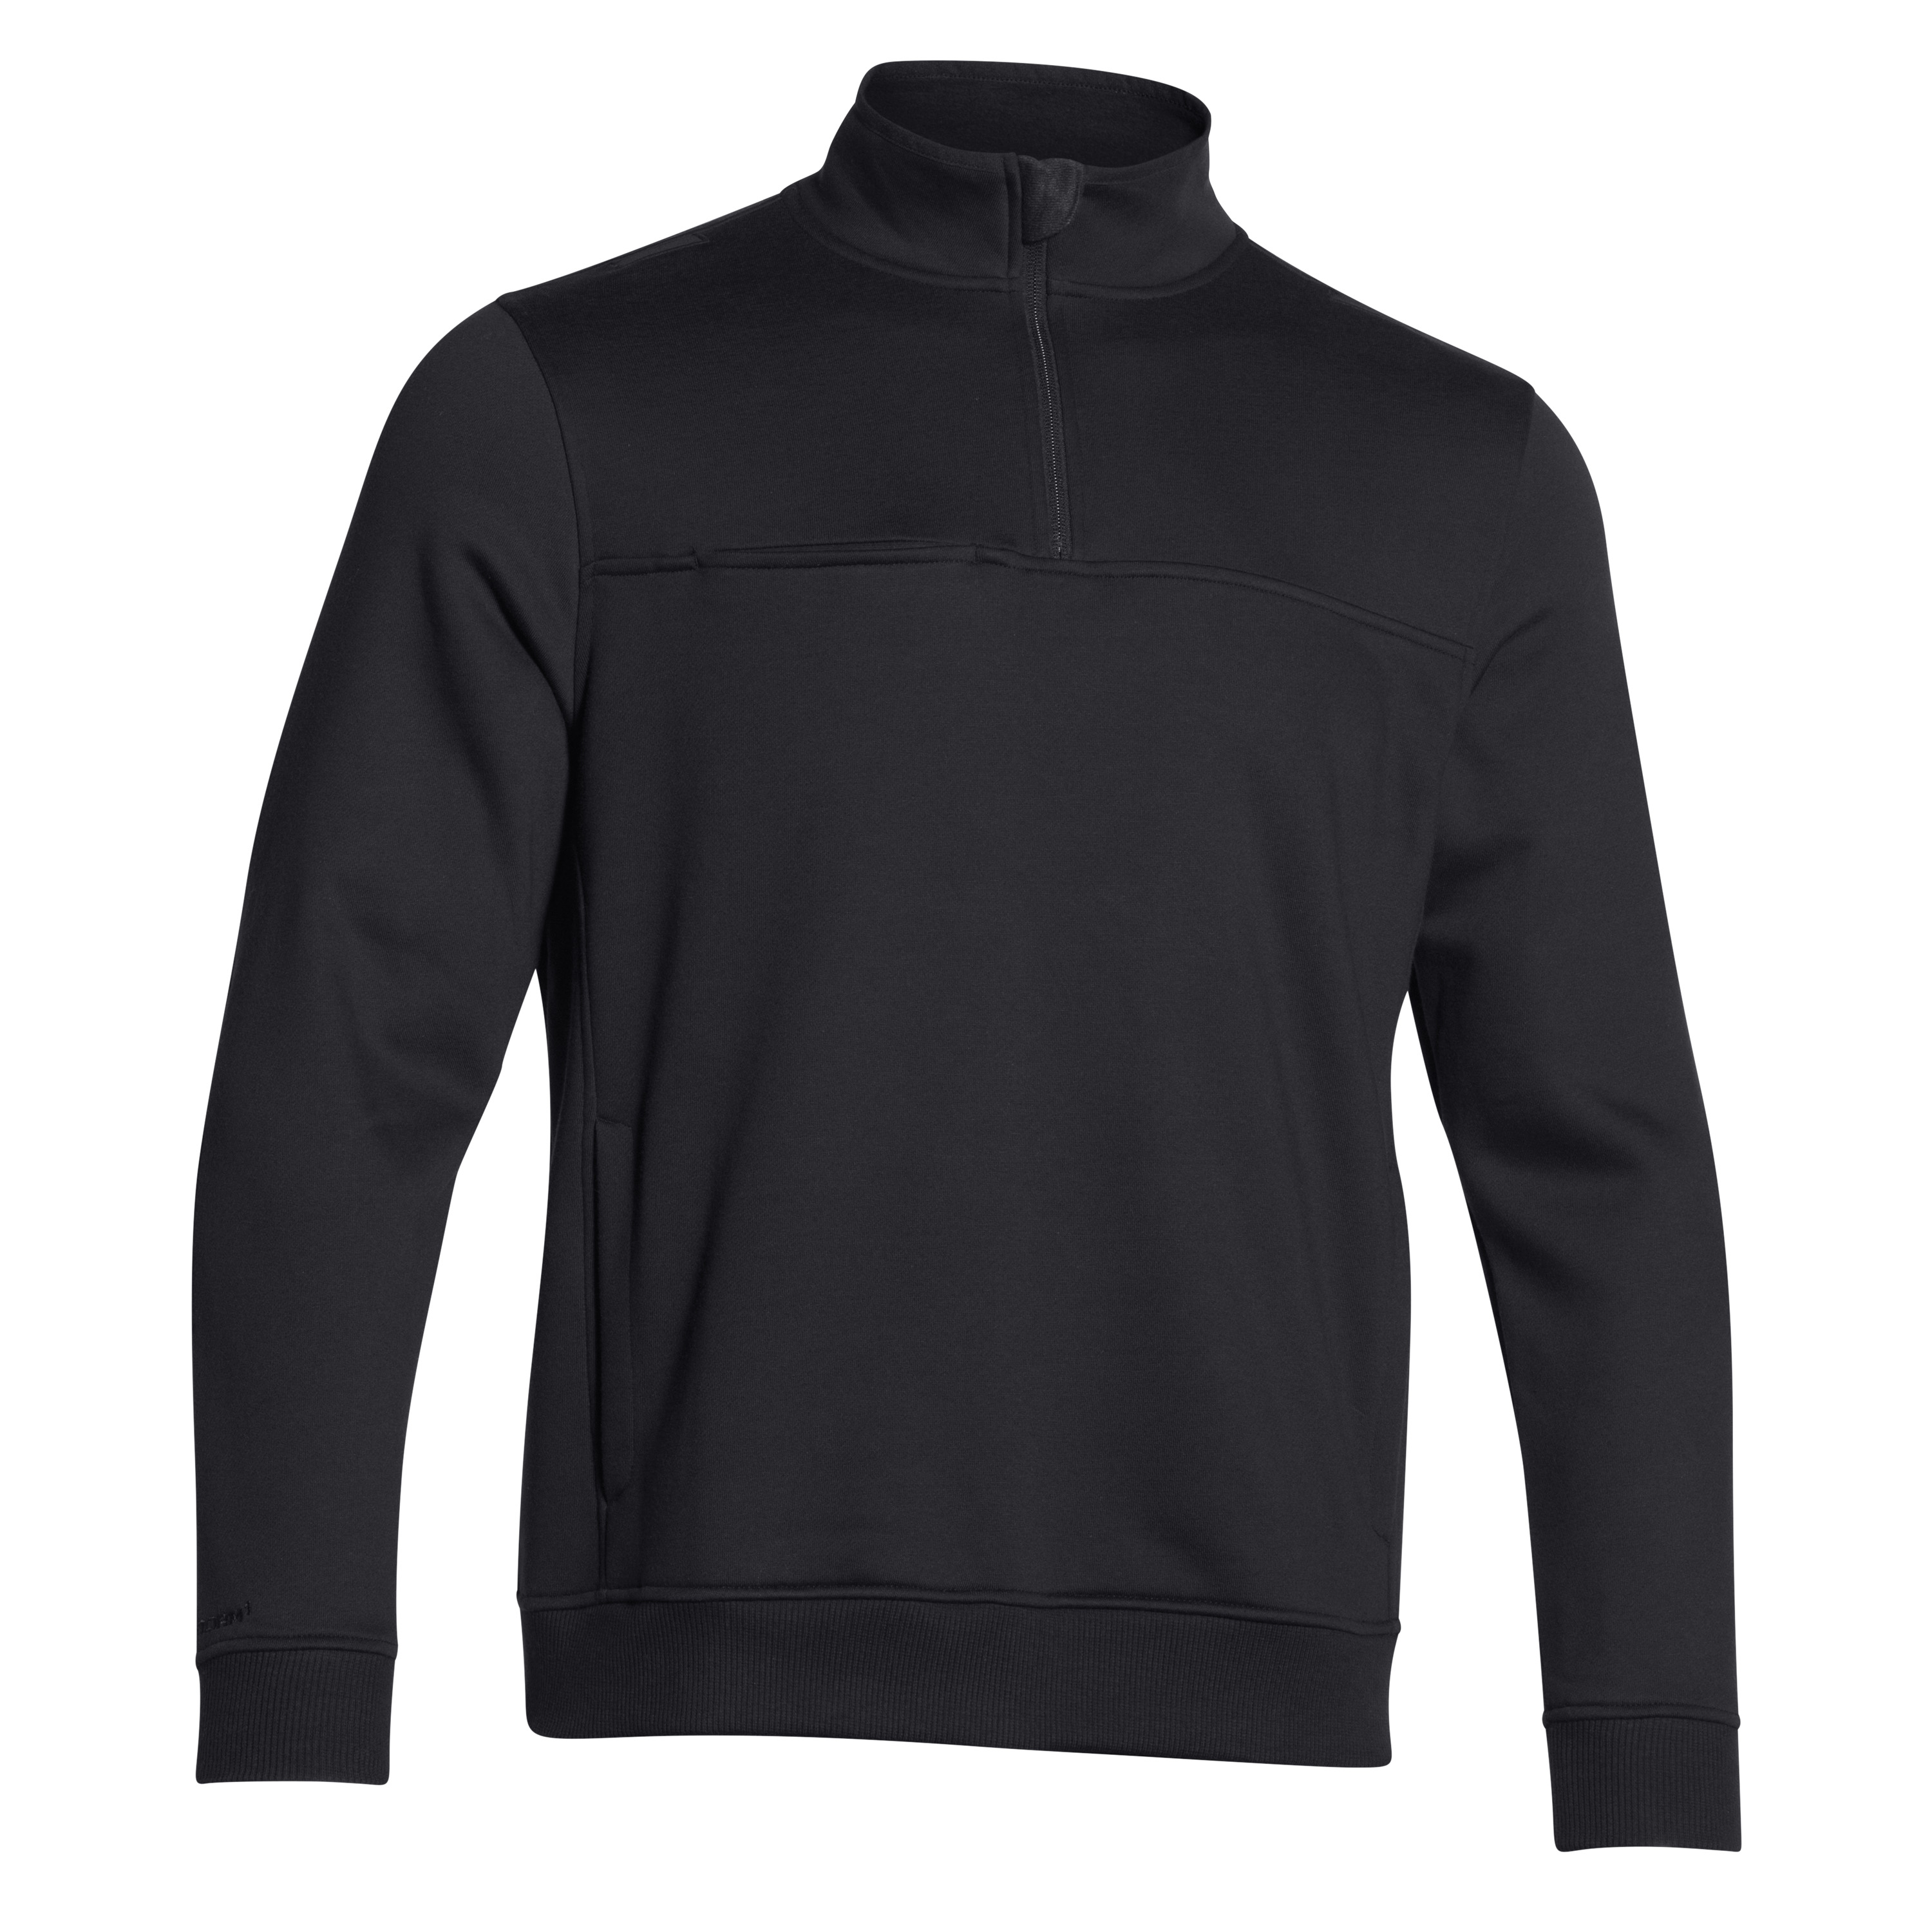 Under Armour Langarmshirt Tactical Job Fleece schwarz